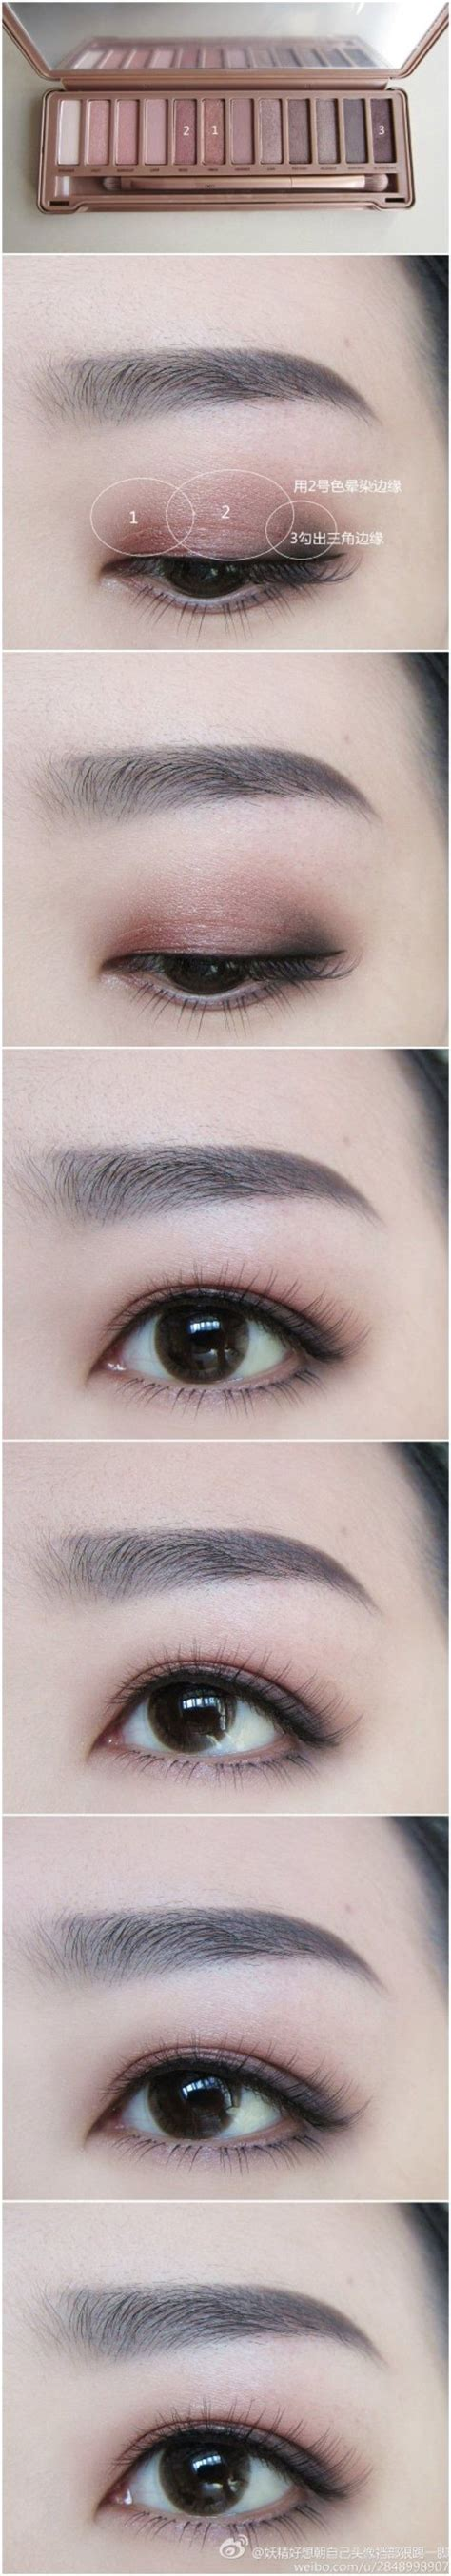 Eyeshadow Korea 50 best images about makeup for asians on